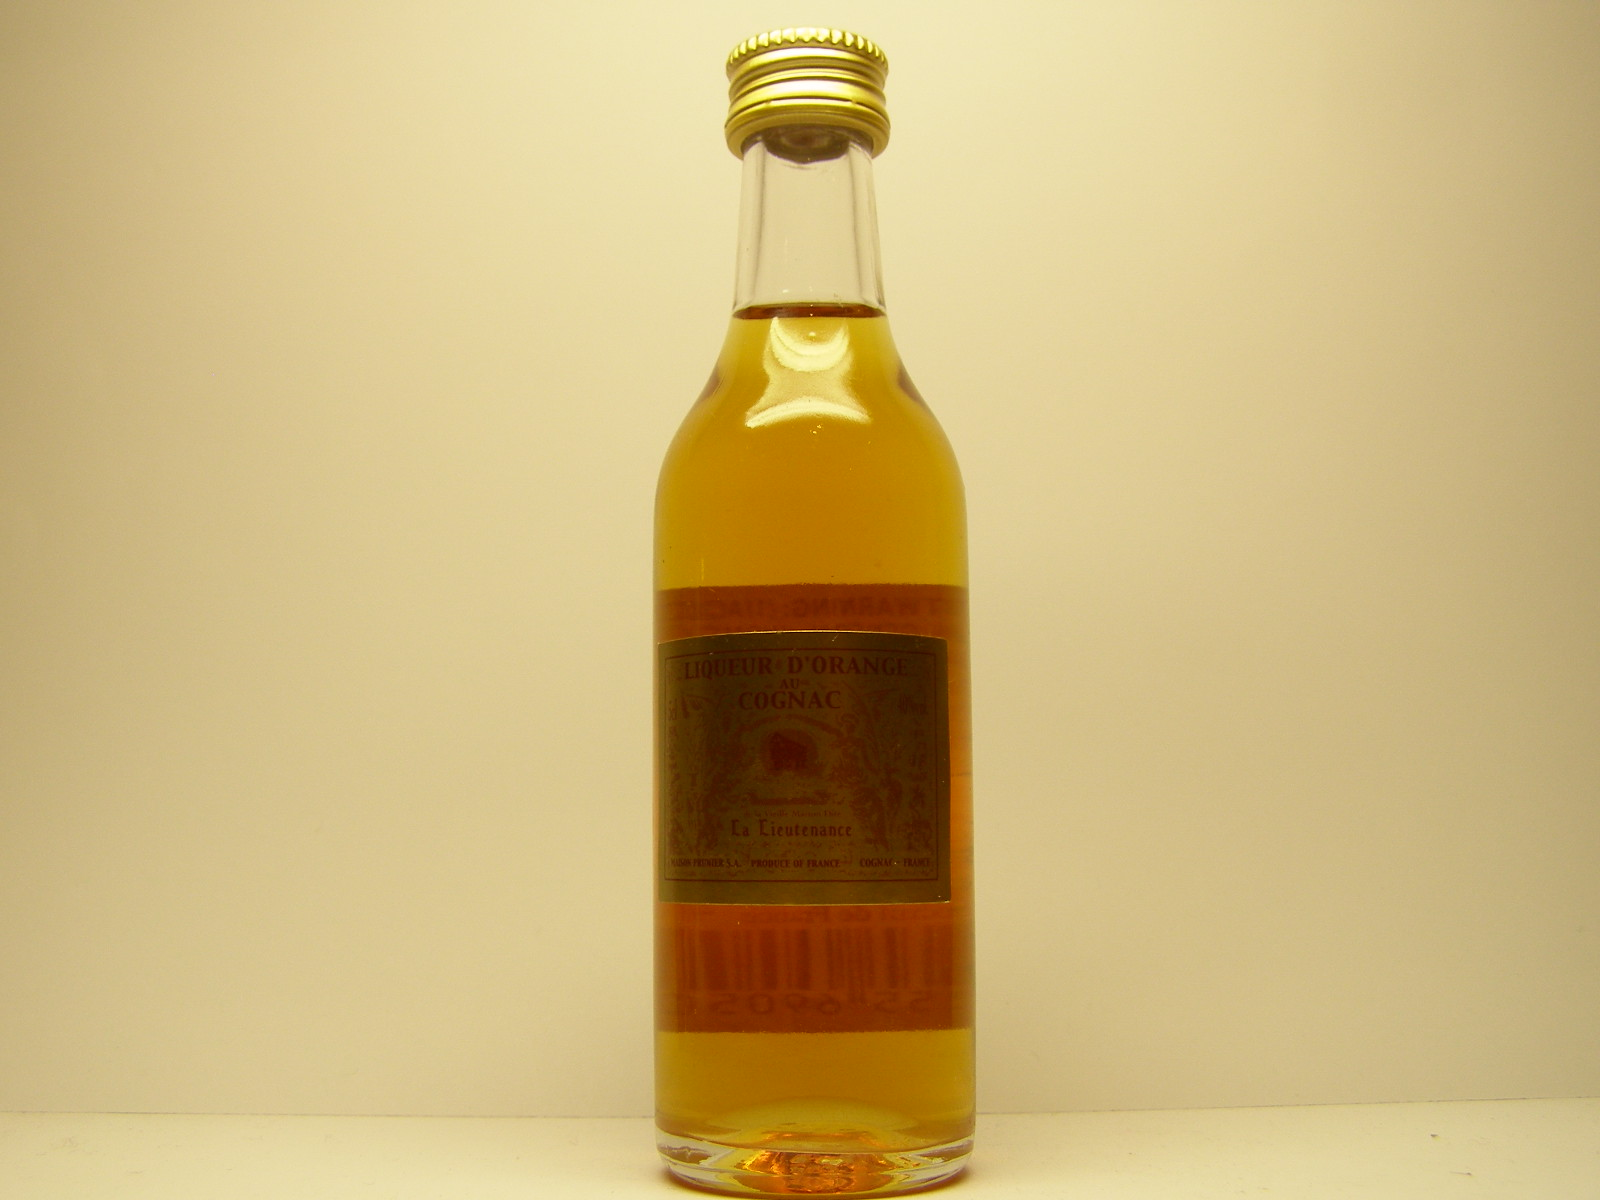 LA LIEUTENANCE Liquer d orange Cognac